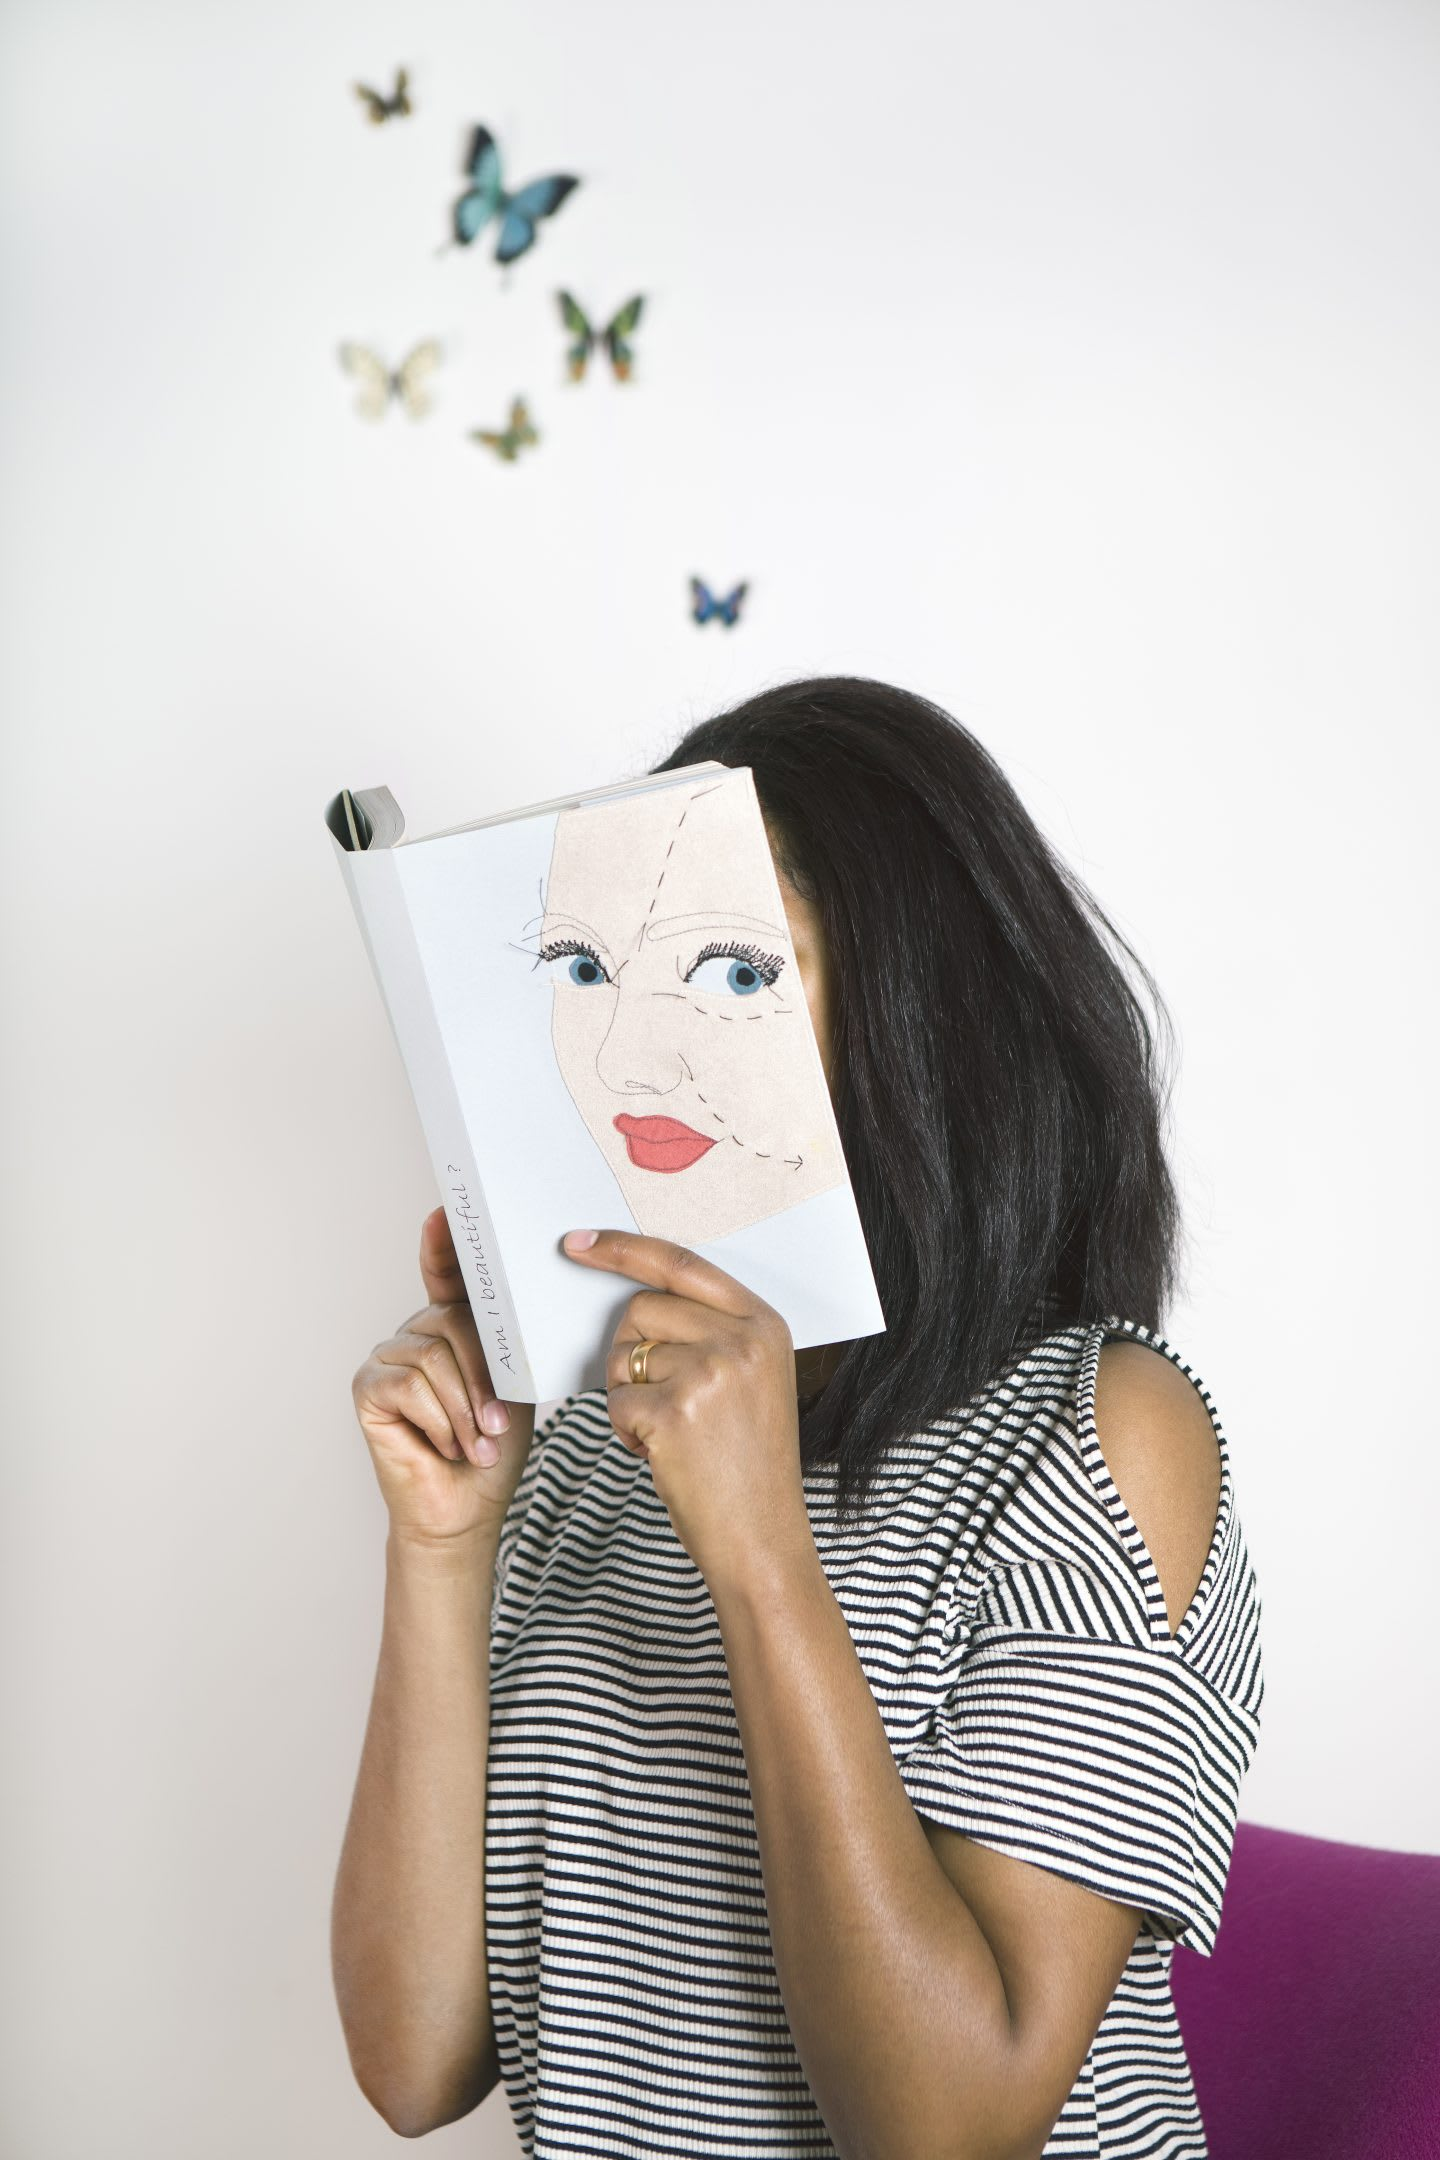 Woman wearing a stripy shirt reading a book with face hidden, imagination, butterflies, thinking, creative, personal, rest, inspiration, GamePlan A